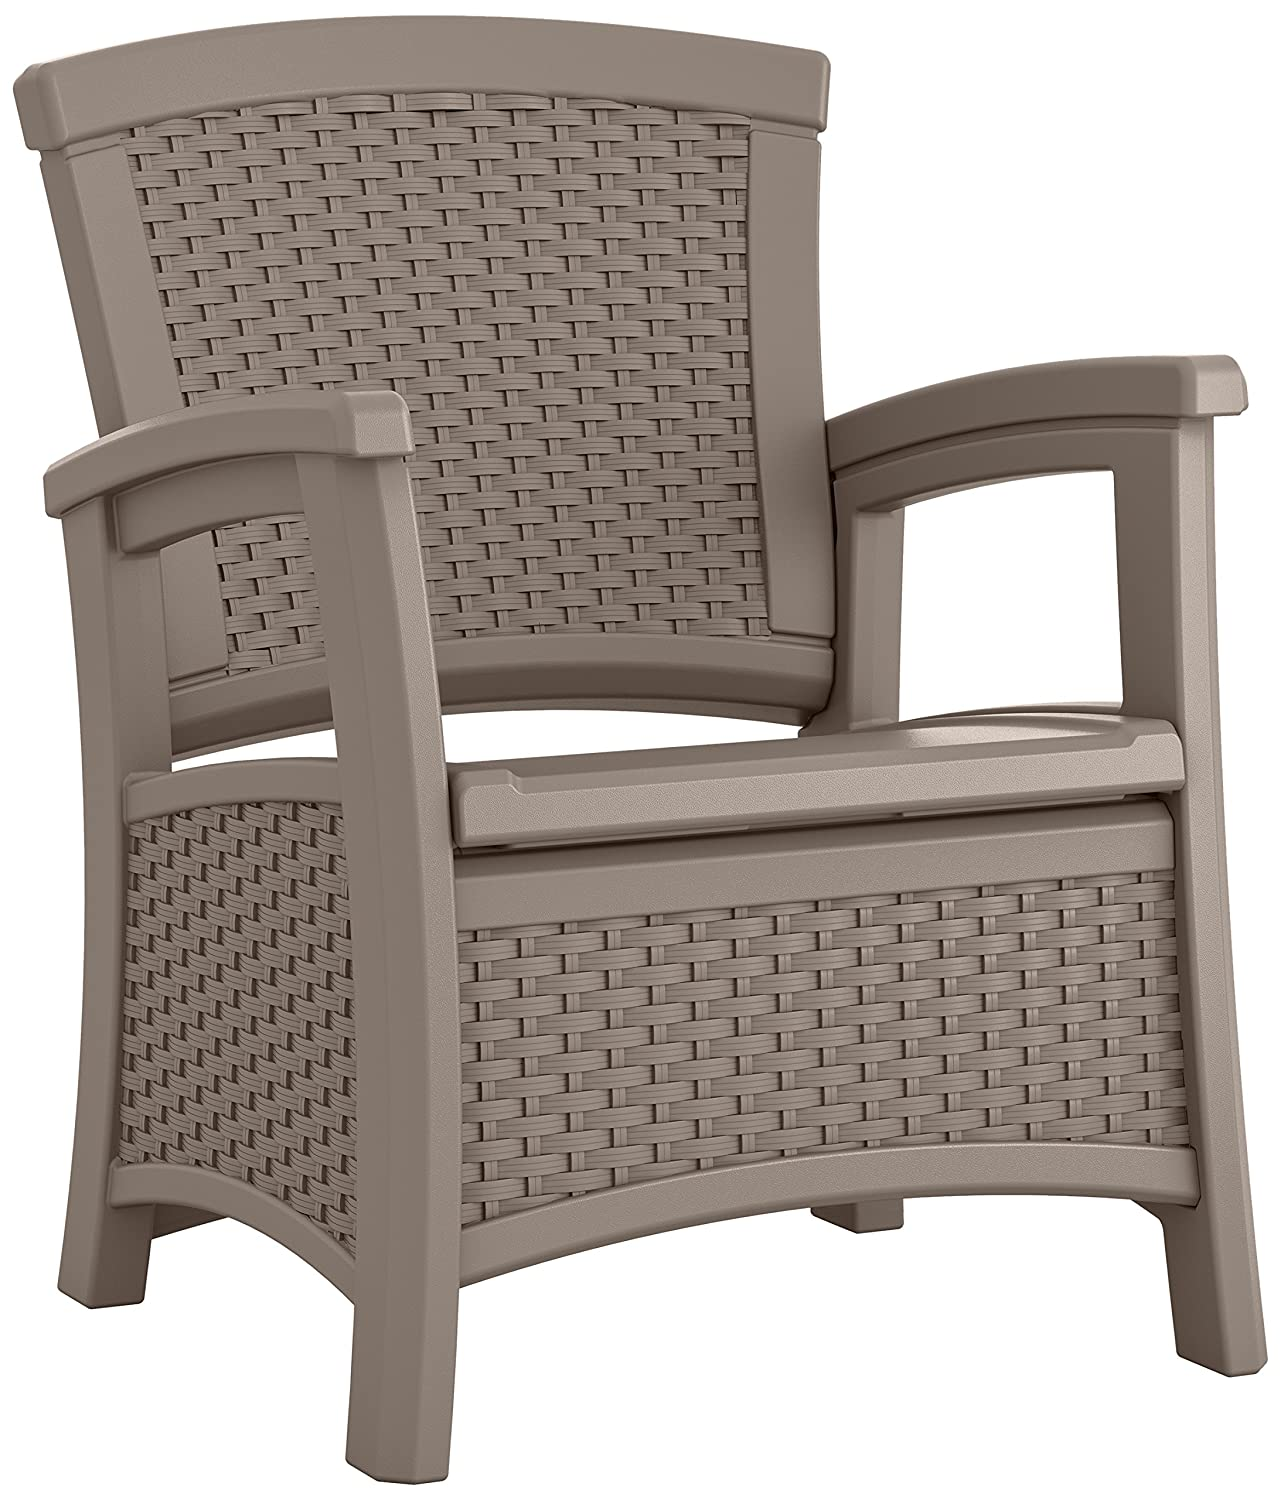 Suncast ELEMENTS Club Chair with Storage, Dark Taupe